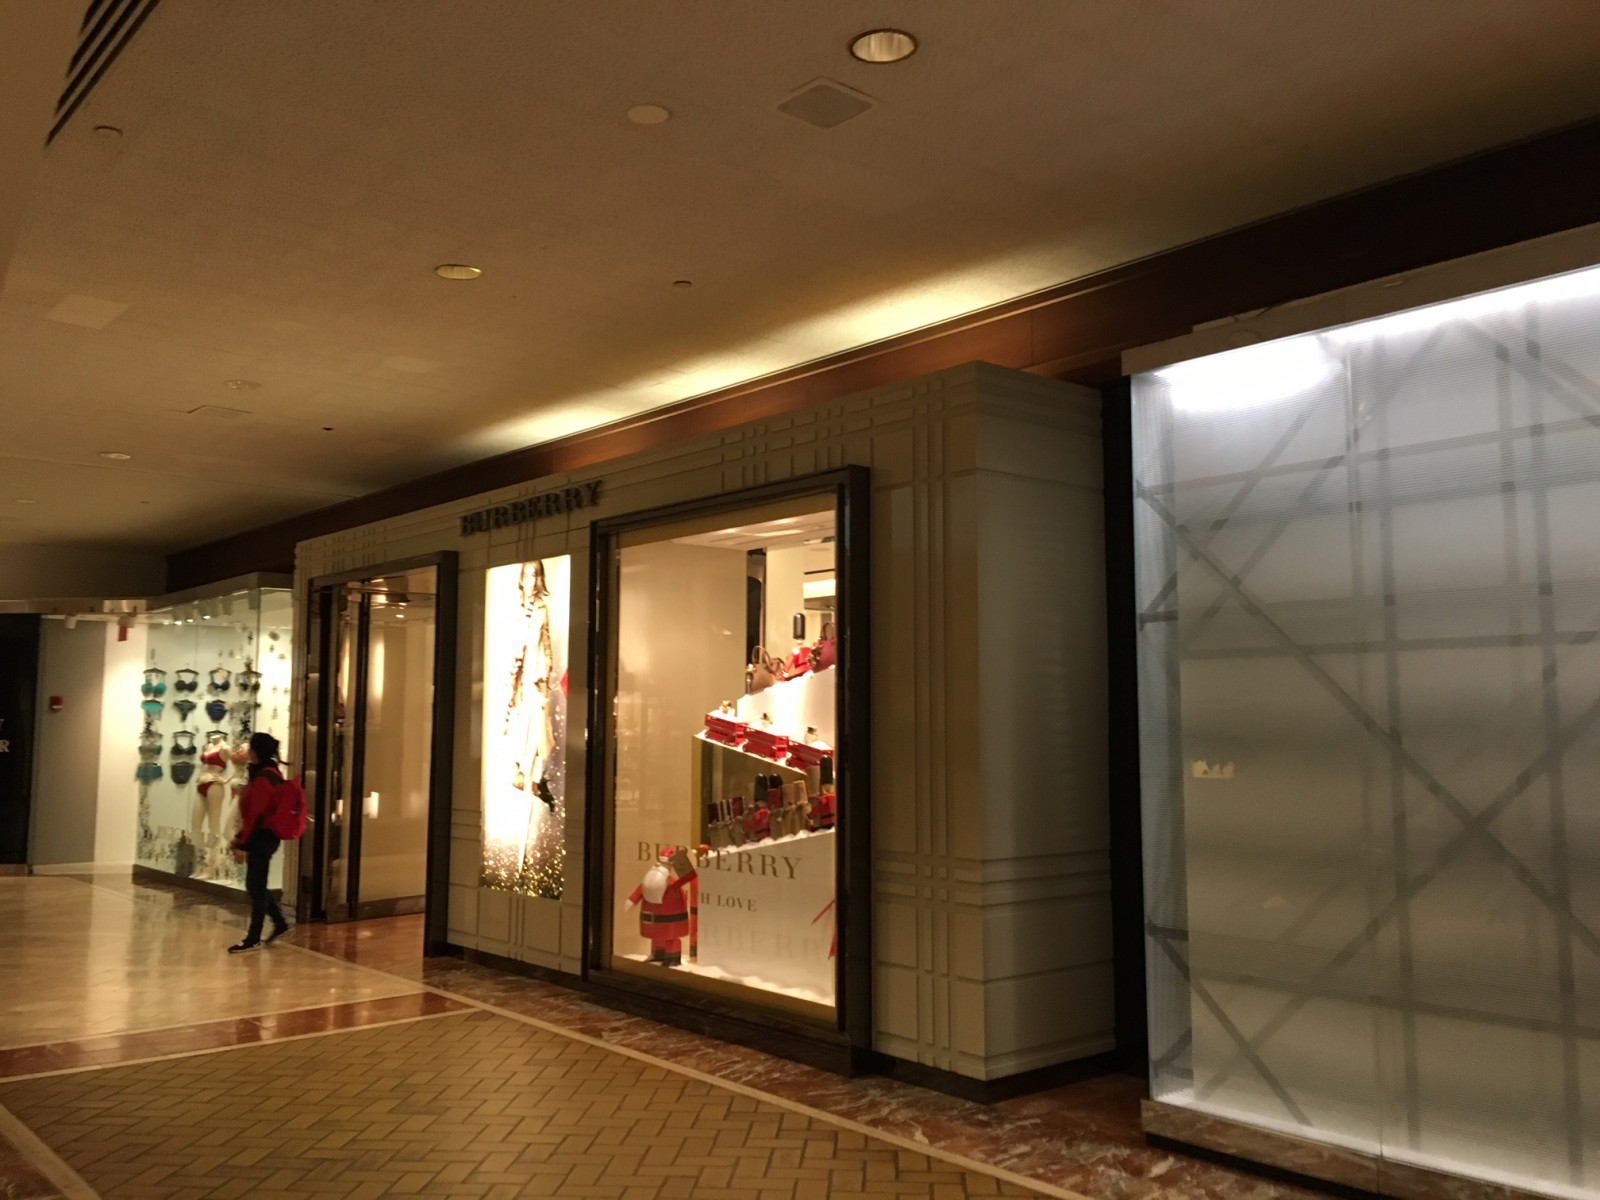 Interior Renovation Of Dior And Burberry Dsh Design Group